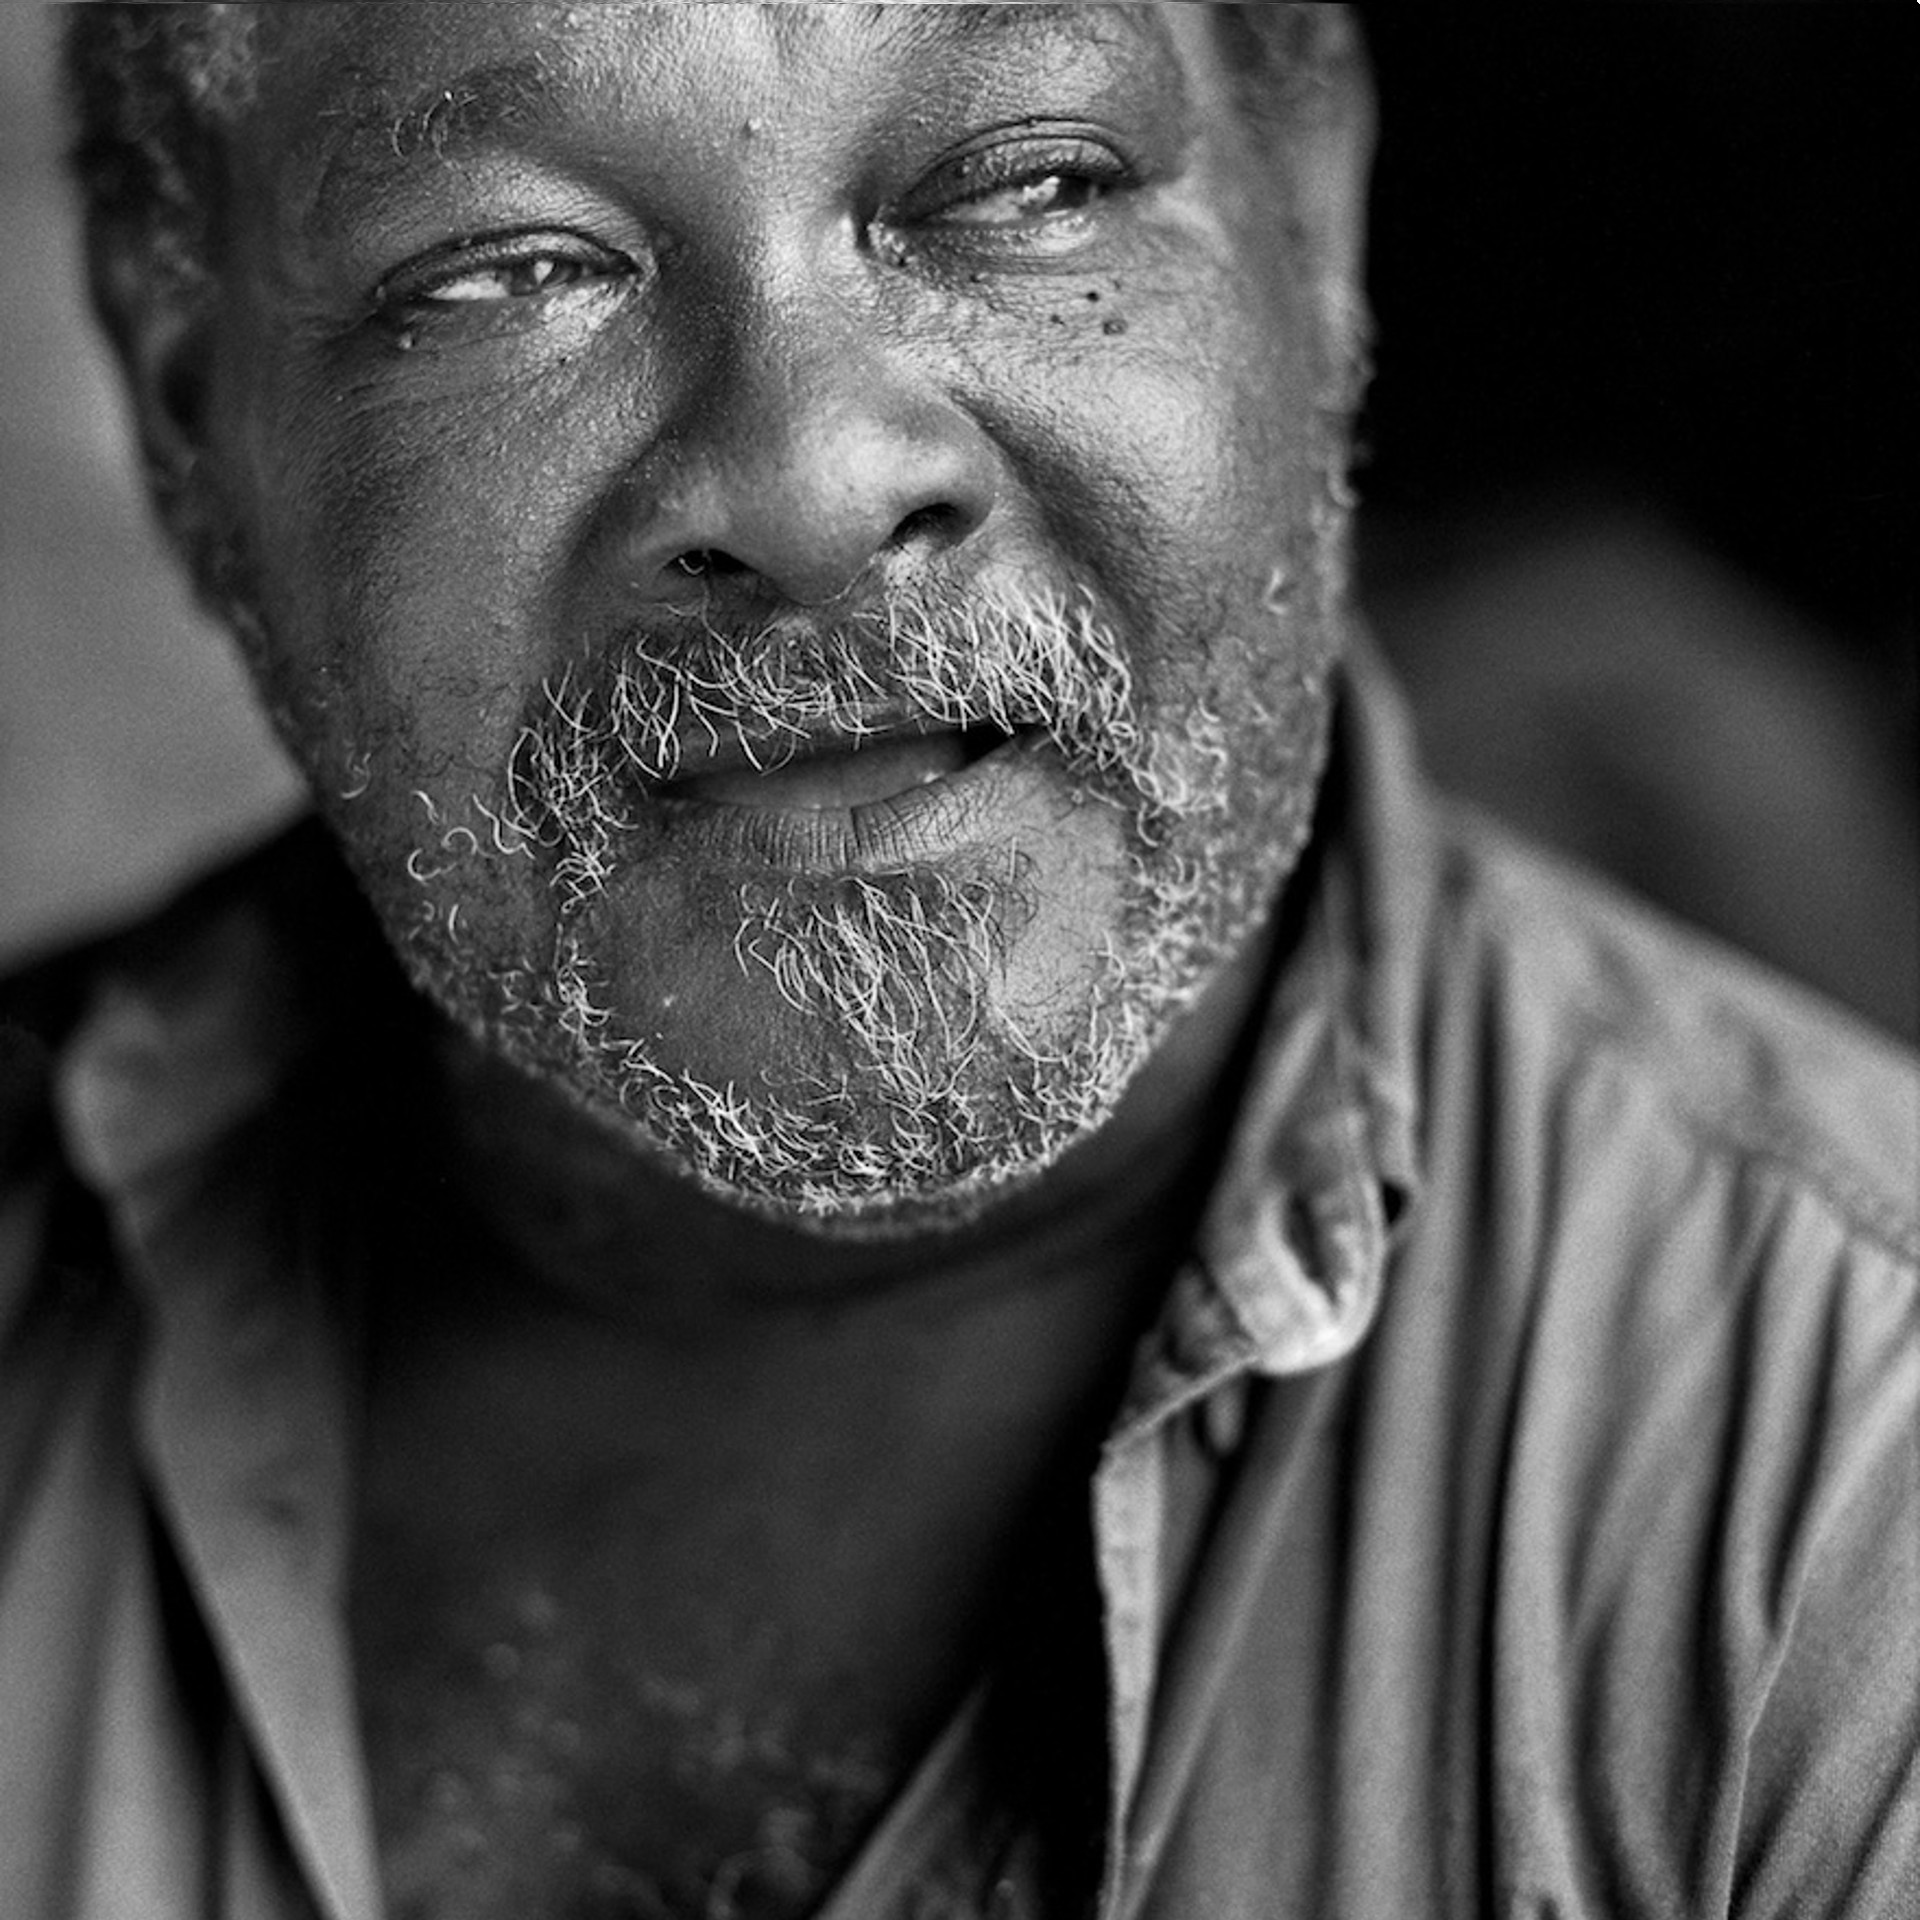 Purvis Young (1943 - 2010)